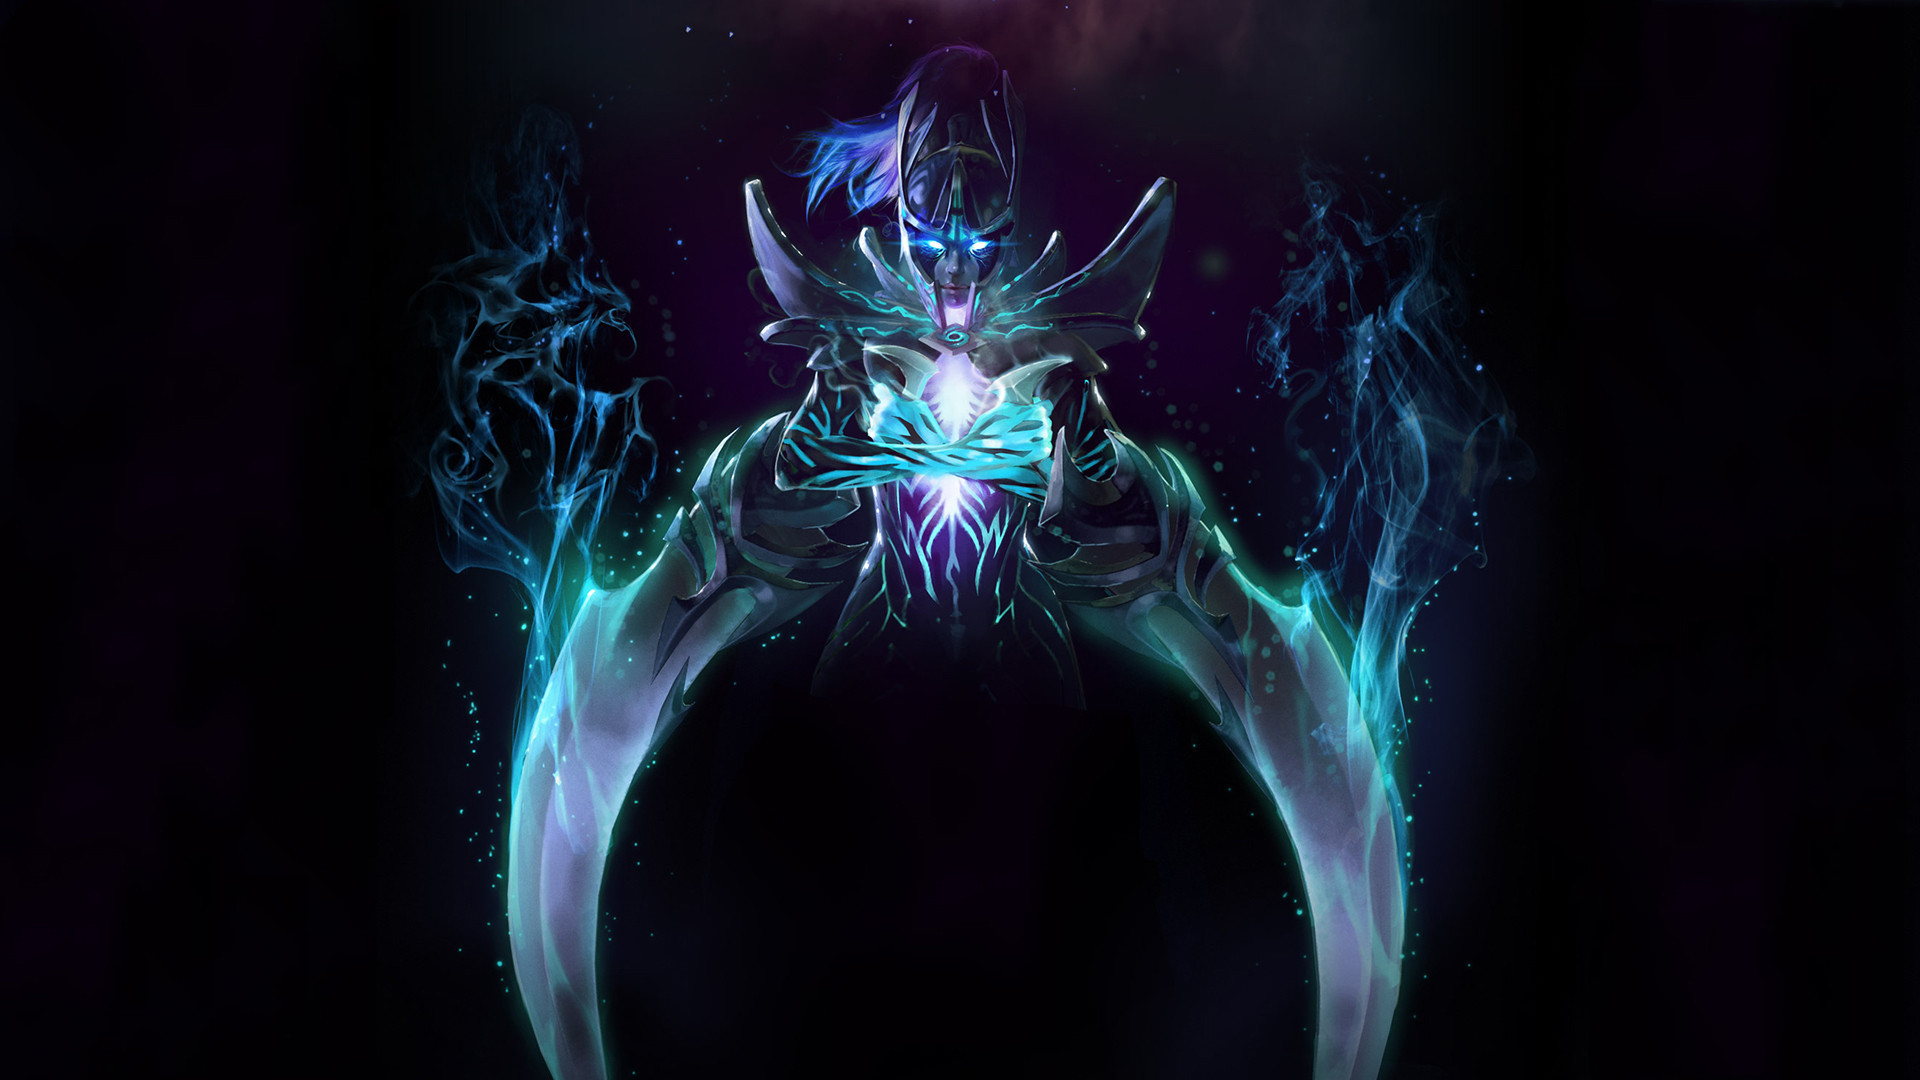 Phantom Assassin arcana wallpapers Dota 2